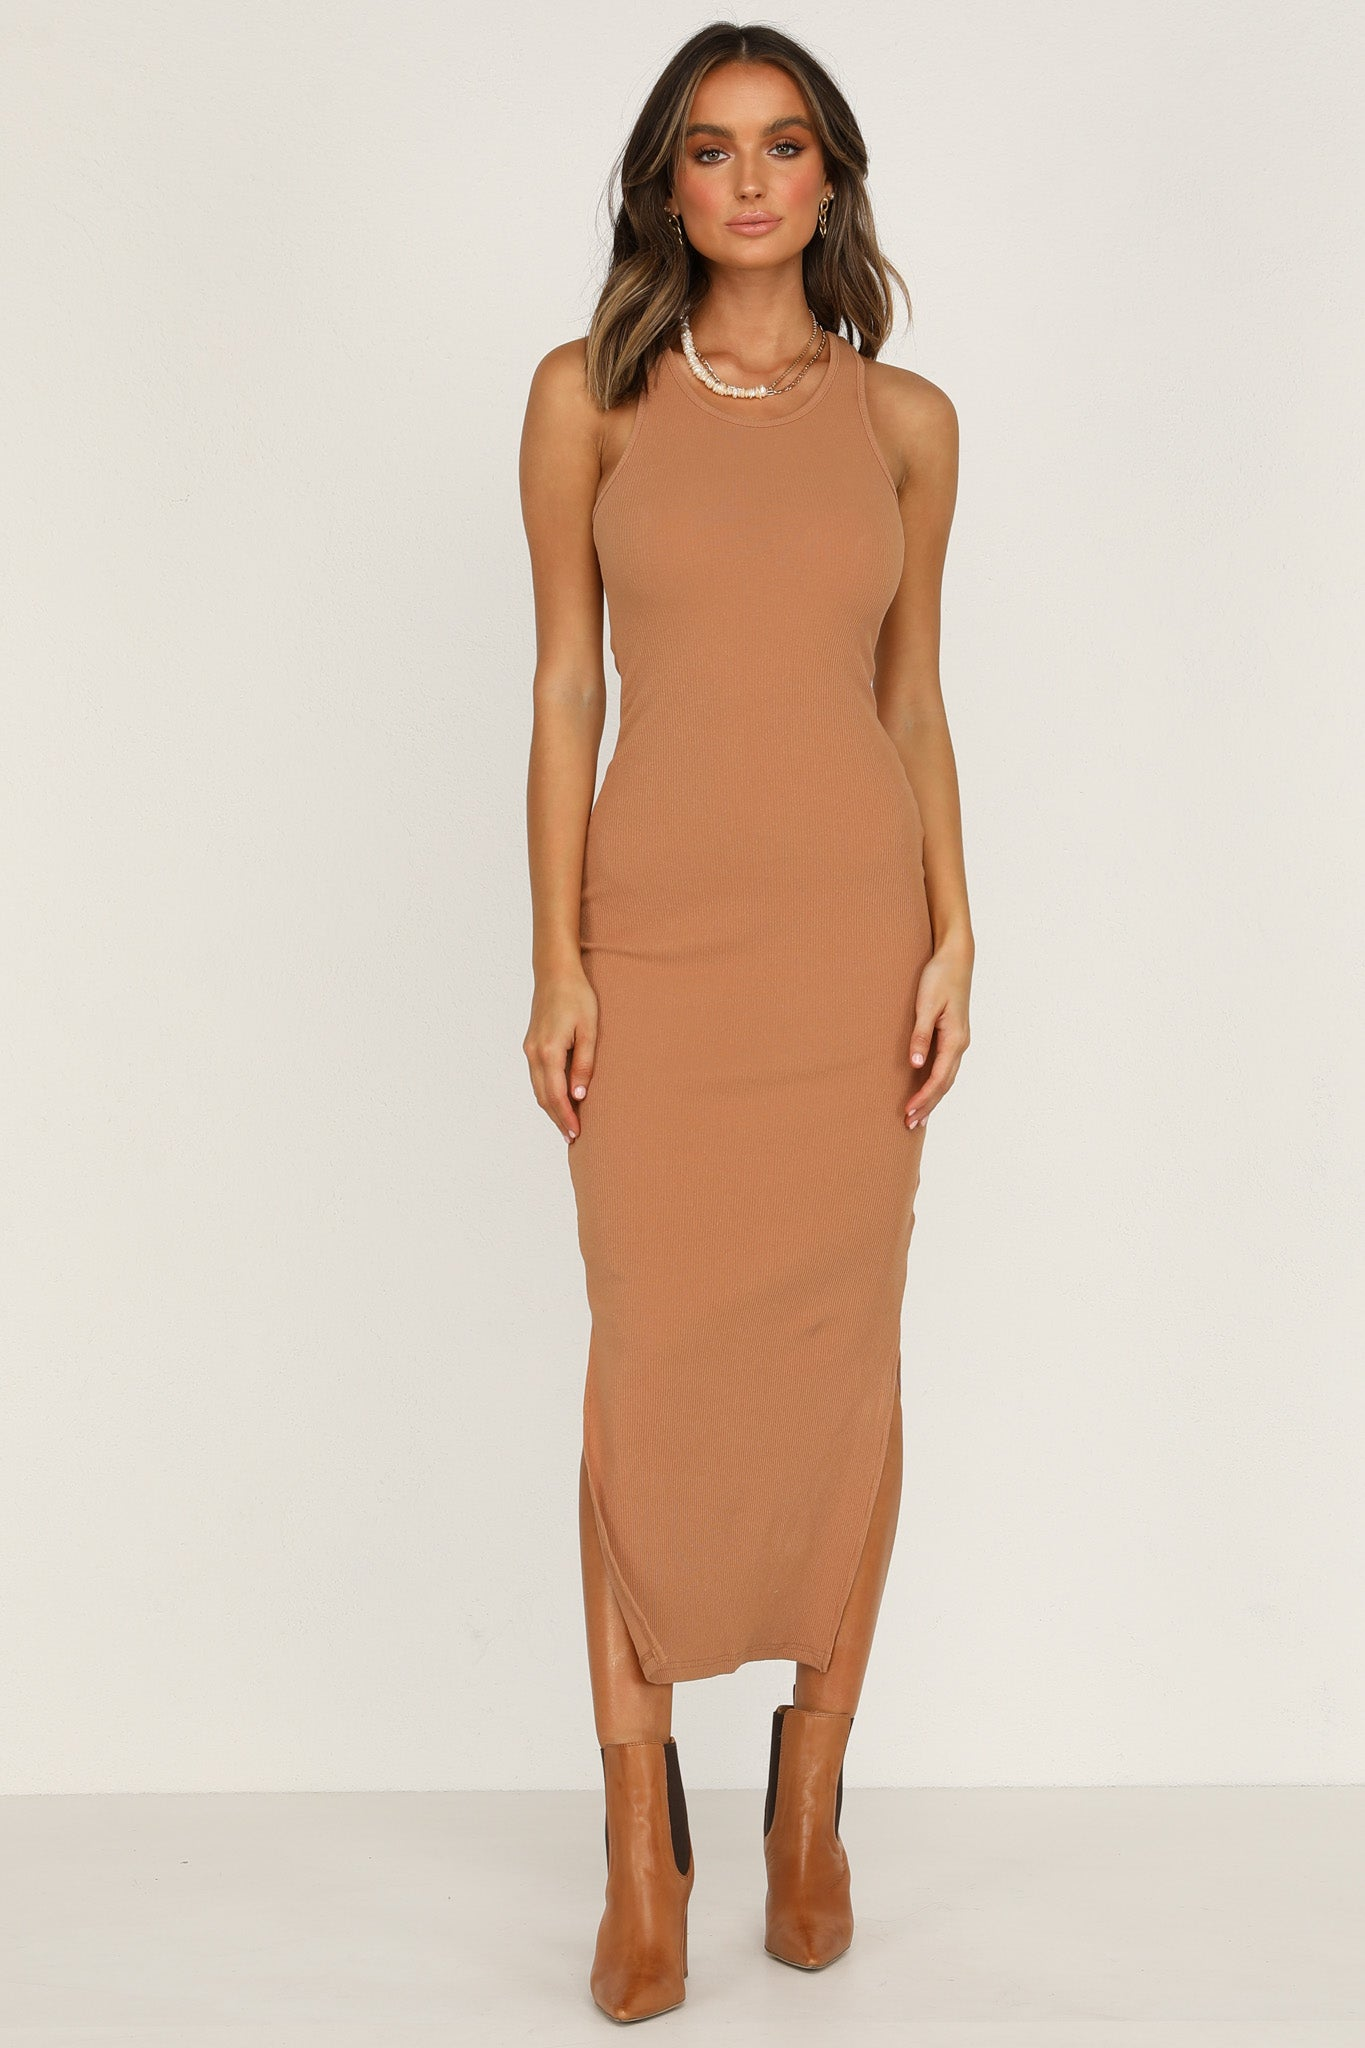 Estelle Dress (Tan)